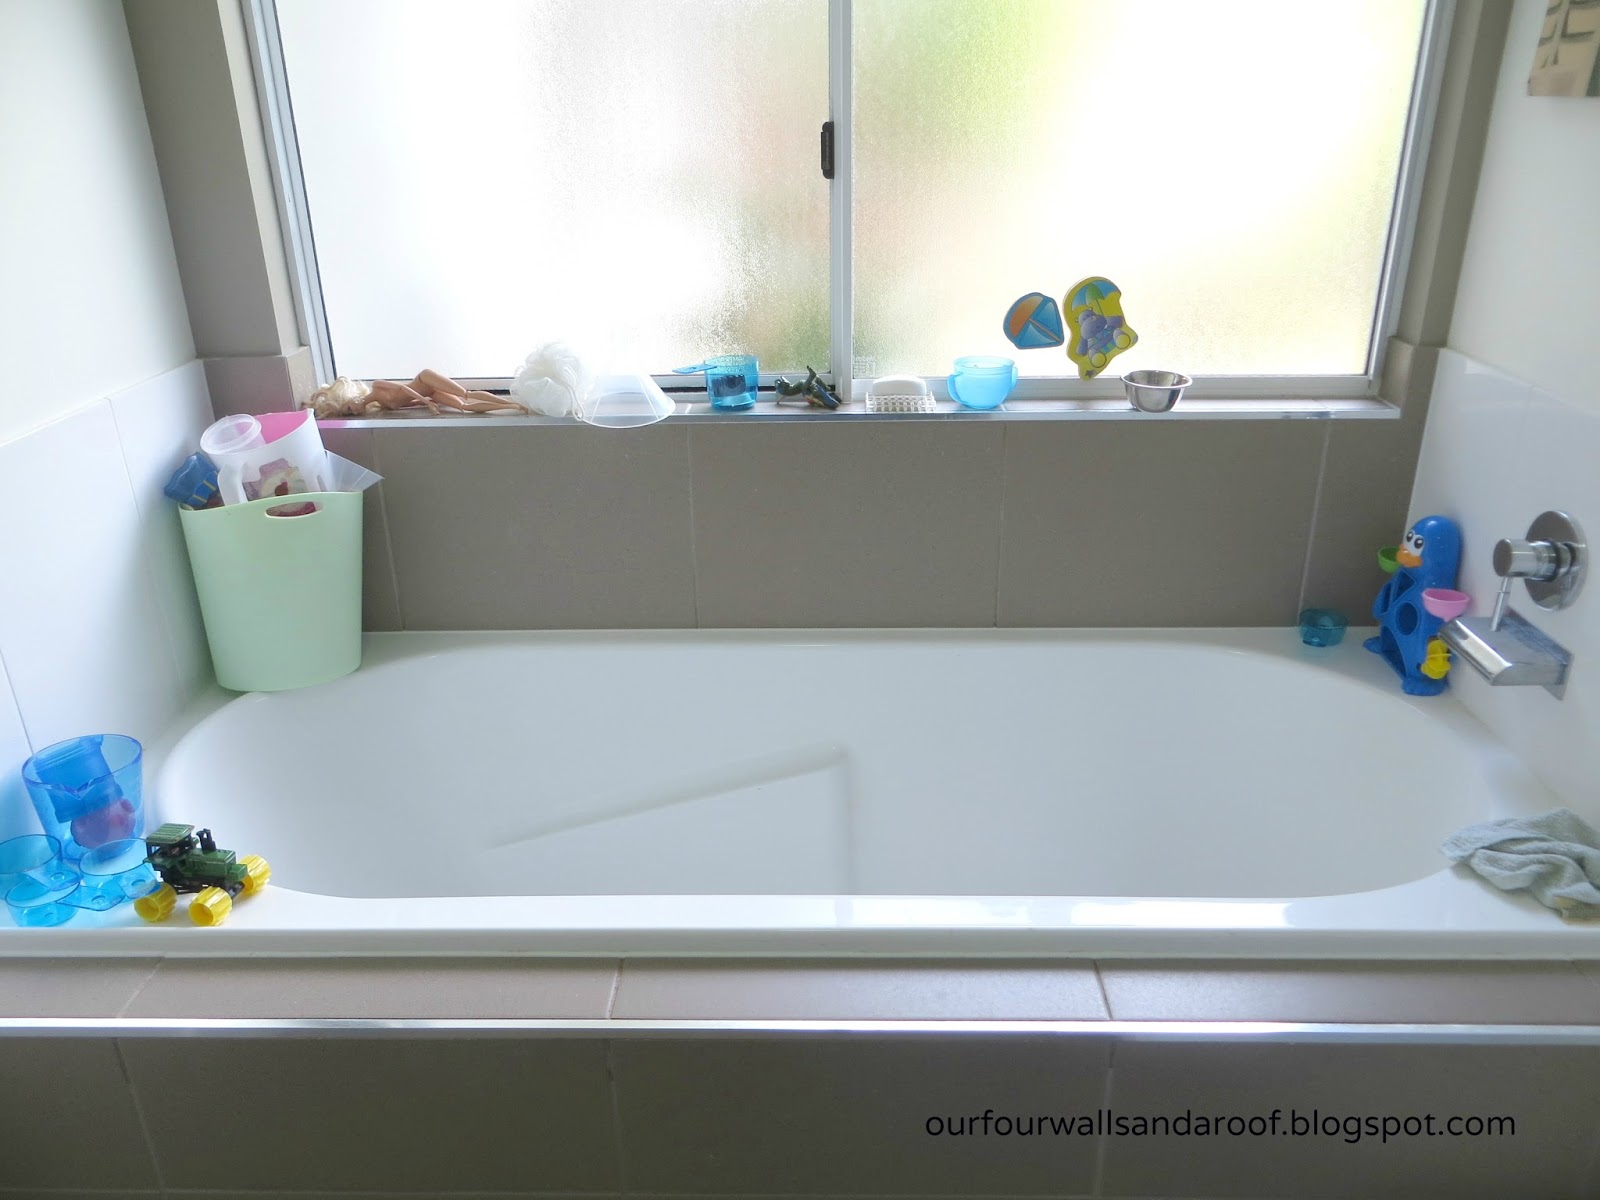 OUR FOUR WALLS AND A ROOF: BATH TOY ORGANISATION